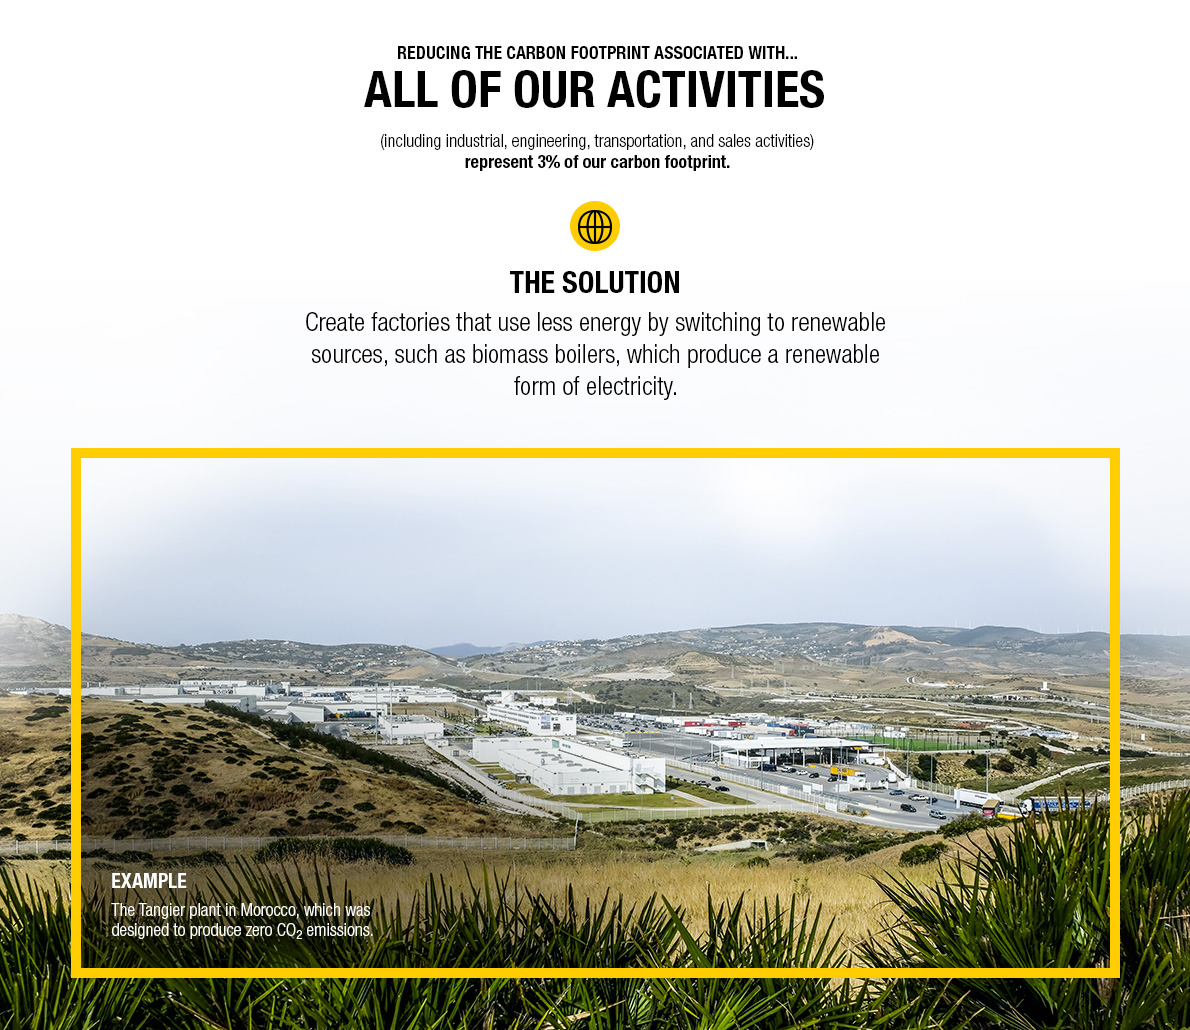 Reducing the carbon footprint associated with all activities of Groupe Renault